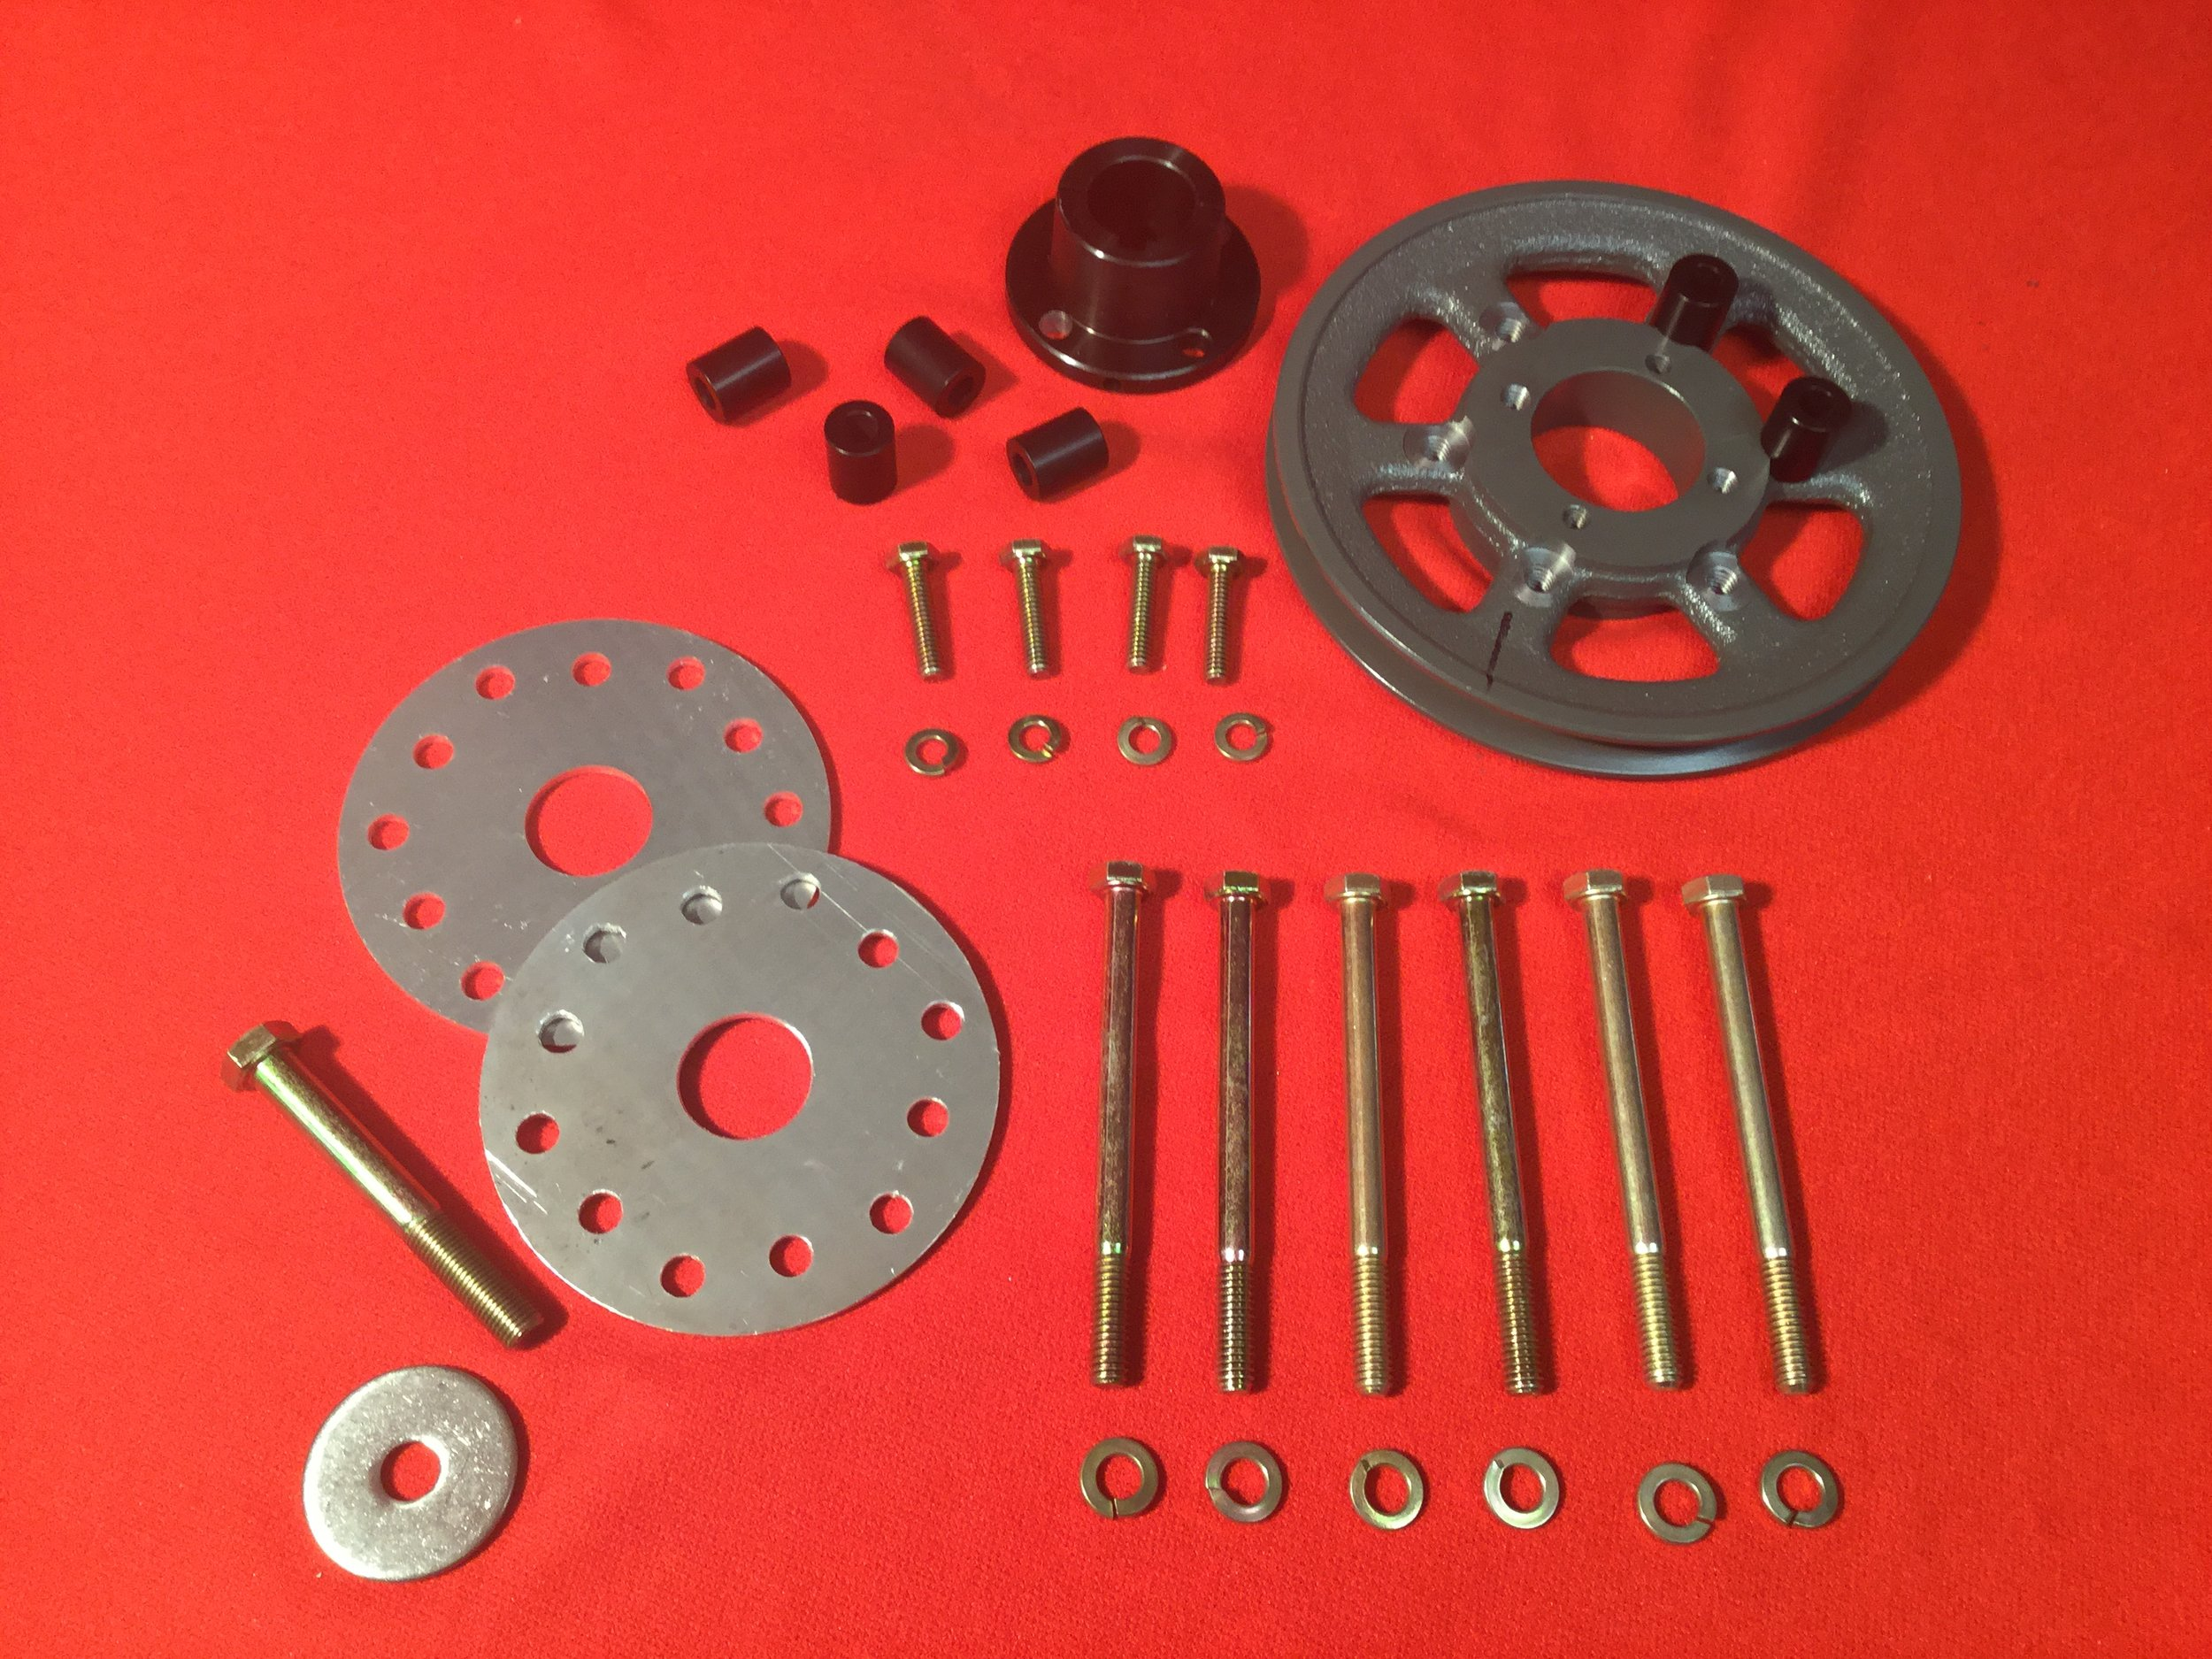 Prop Flange Kit with Pulley - Prop Flange Kit with 6